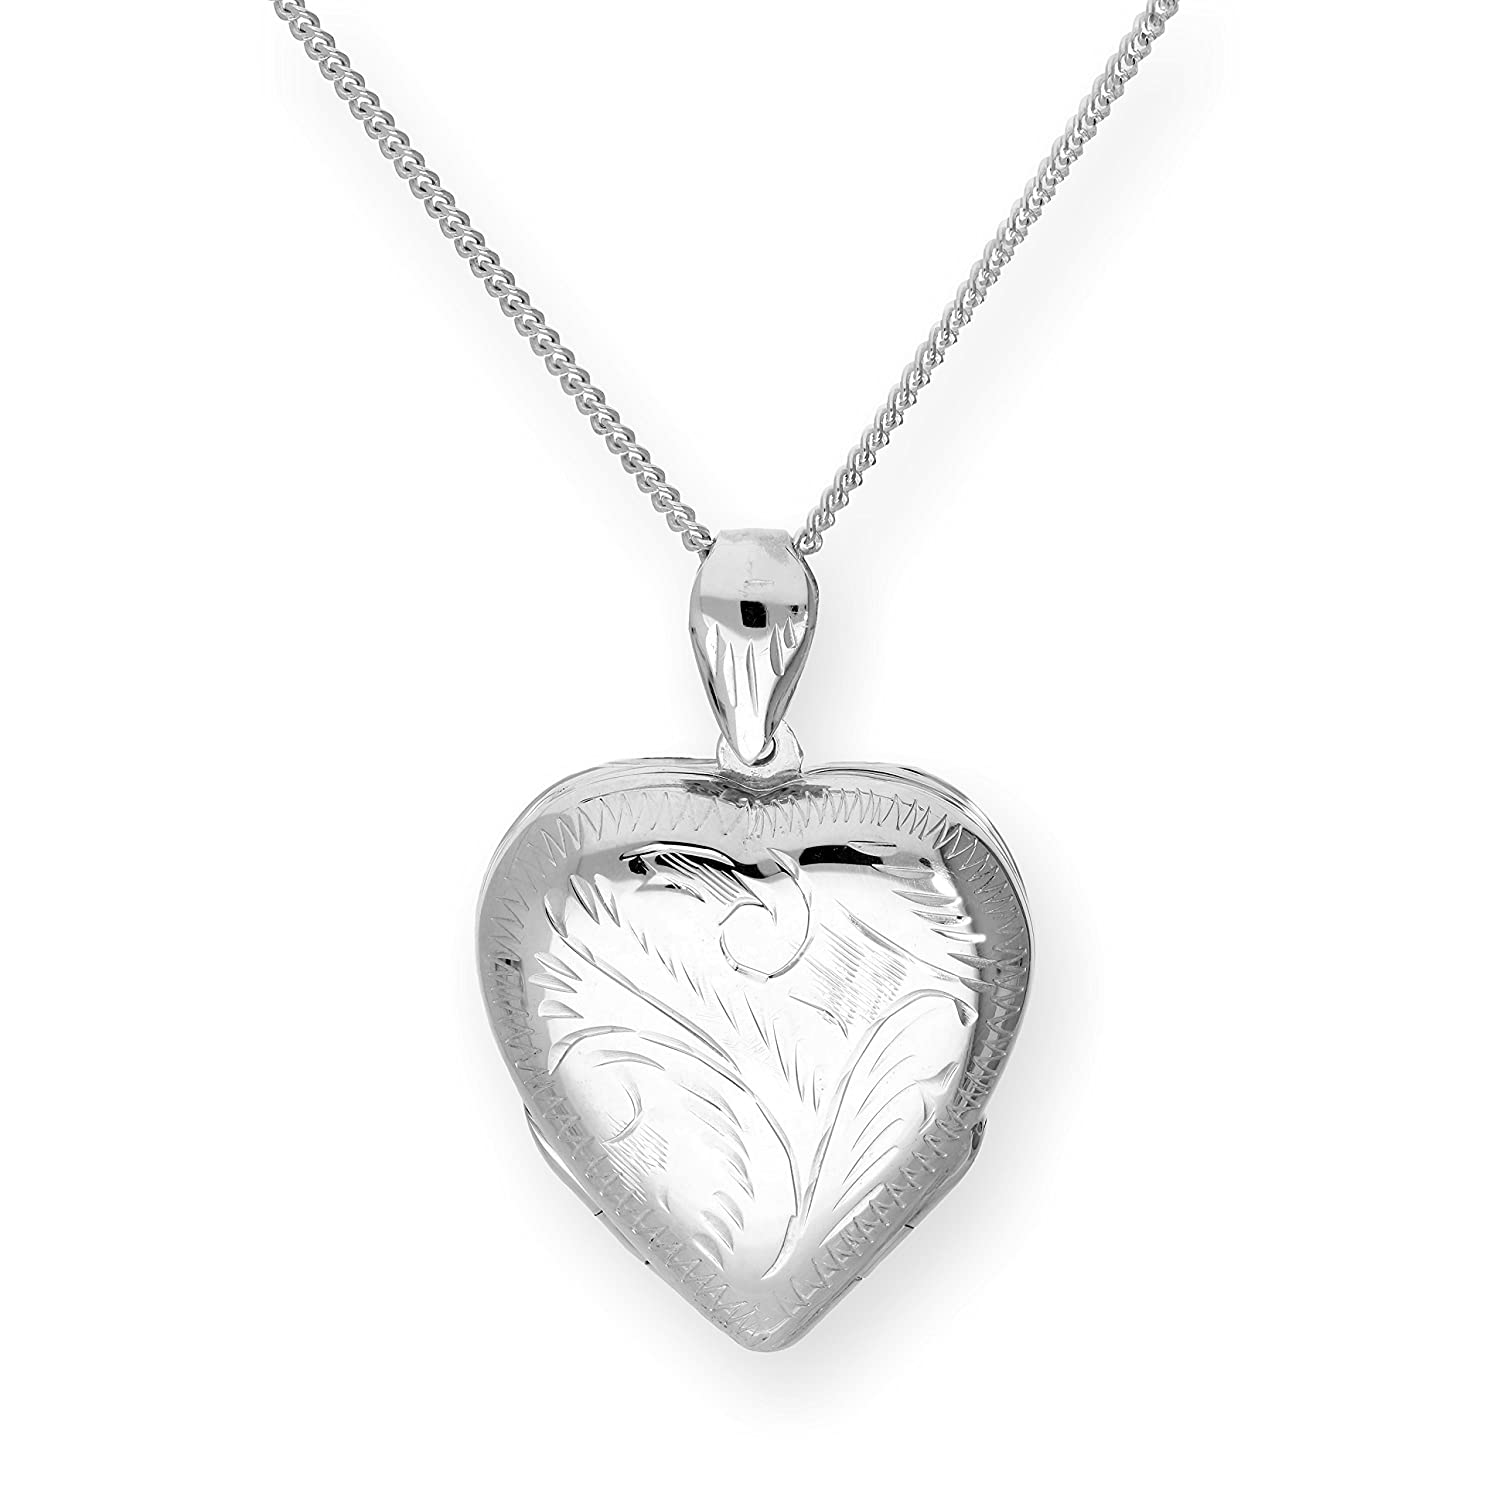 Large Sterling Silver 4 Photo Engraved Heart Family Locket on Chain 16-24 Inches jewellerybox BKT-090-16